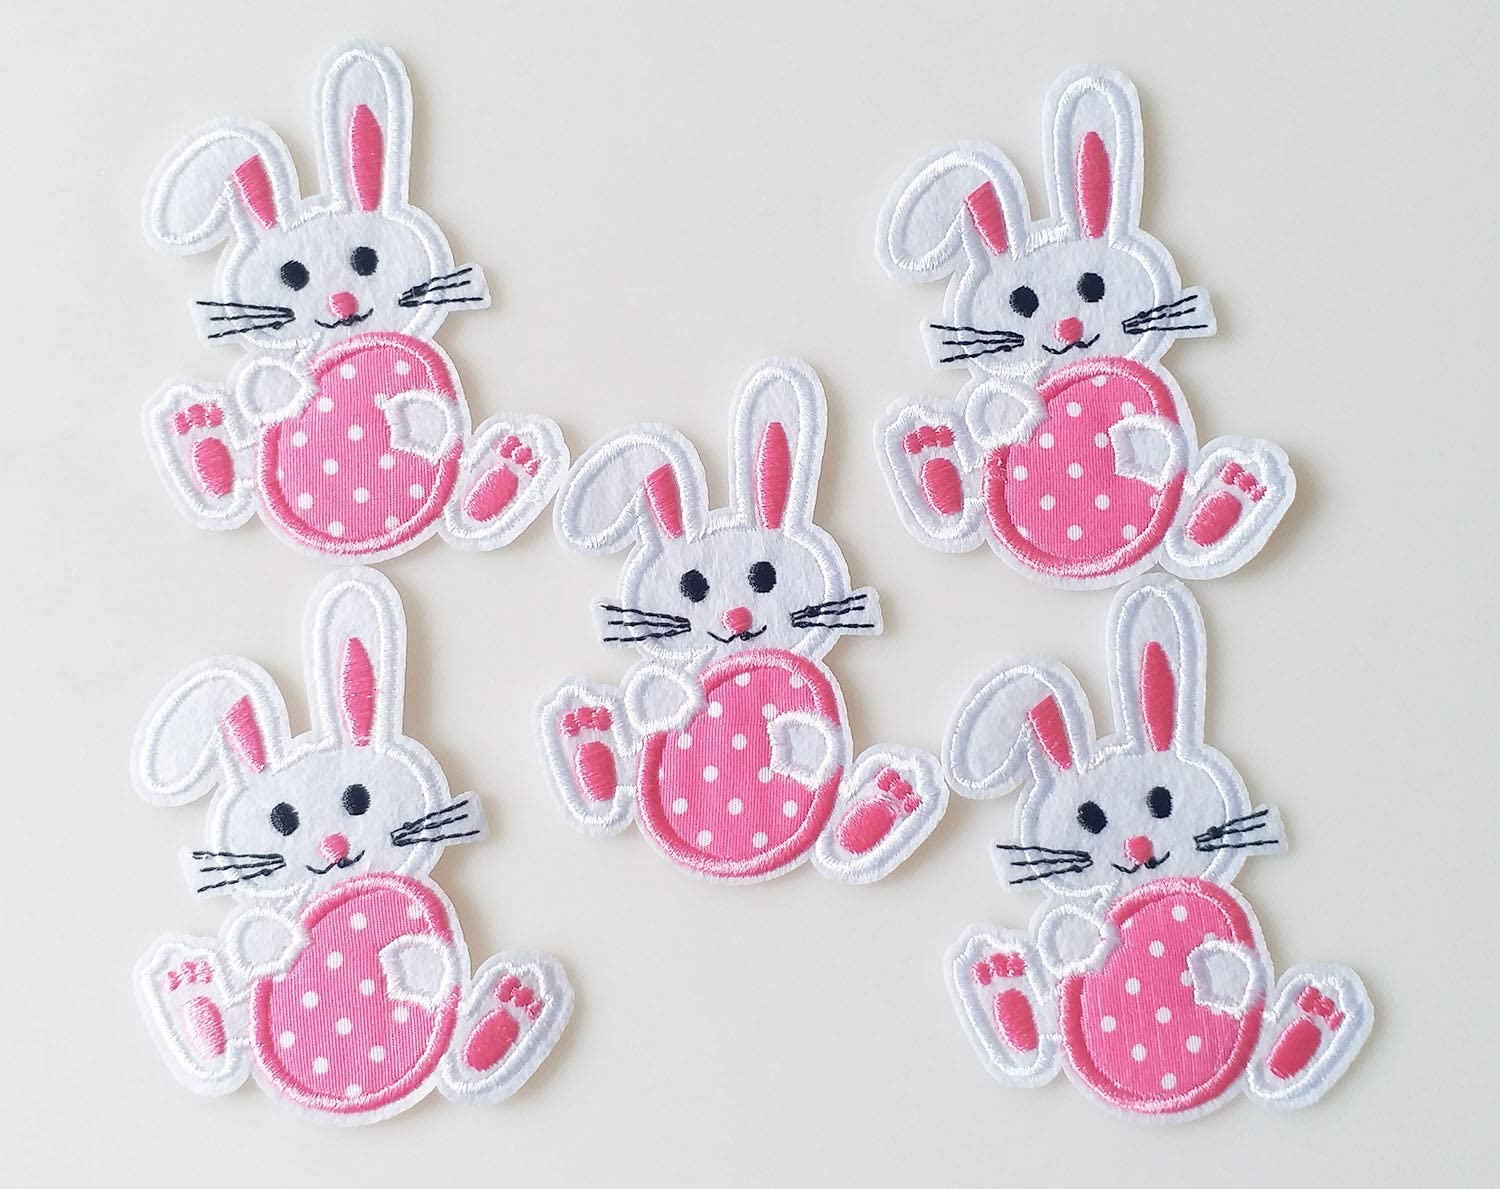 Easter Bunny Pink Girl Embroidered Iron On Applique Patch Bunny Rabbit